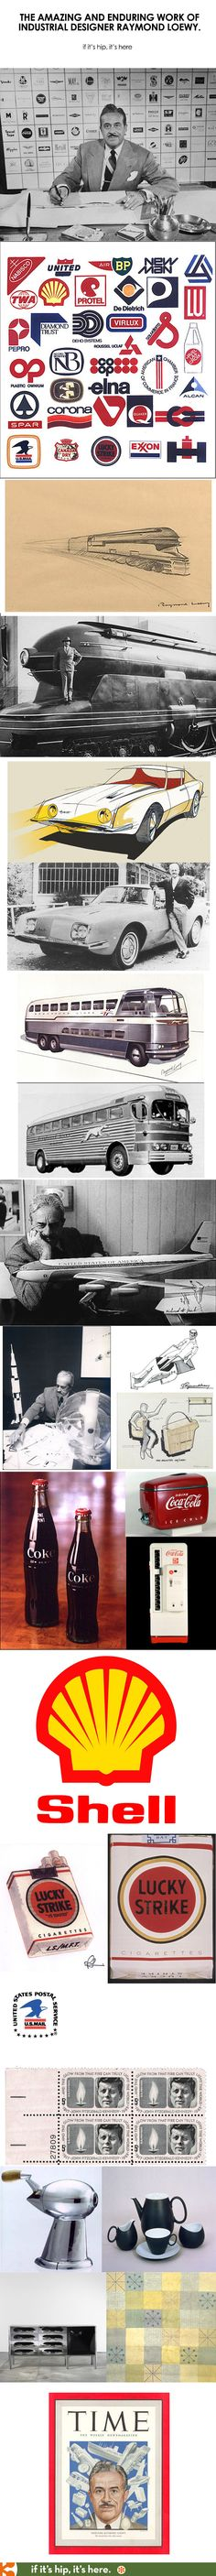 A look at some of Industrial Designer Raymond Loewy's brilliant work at if it's hip, it's here.